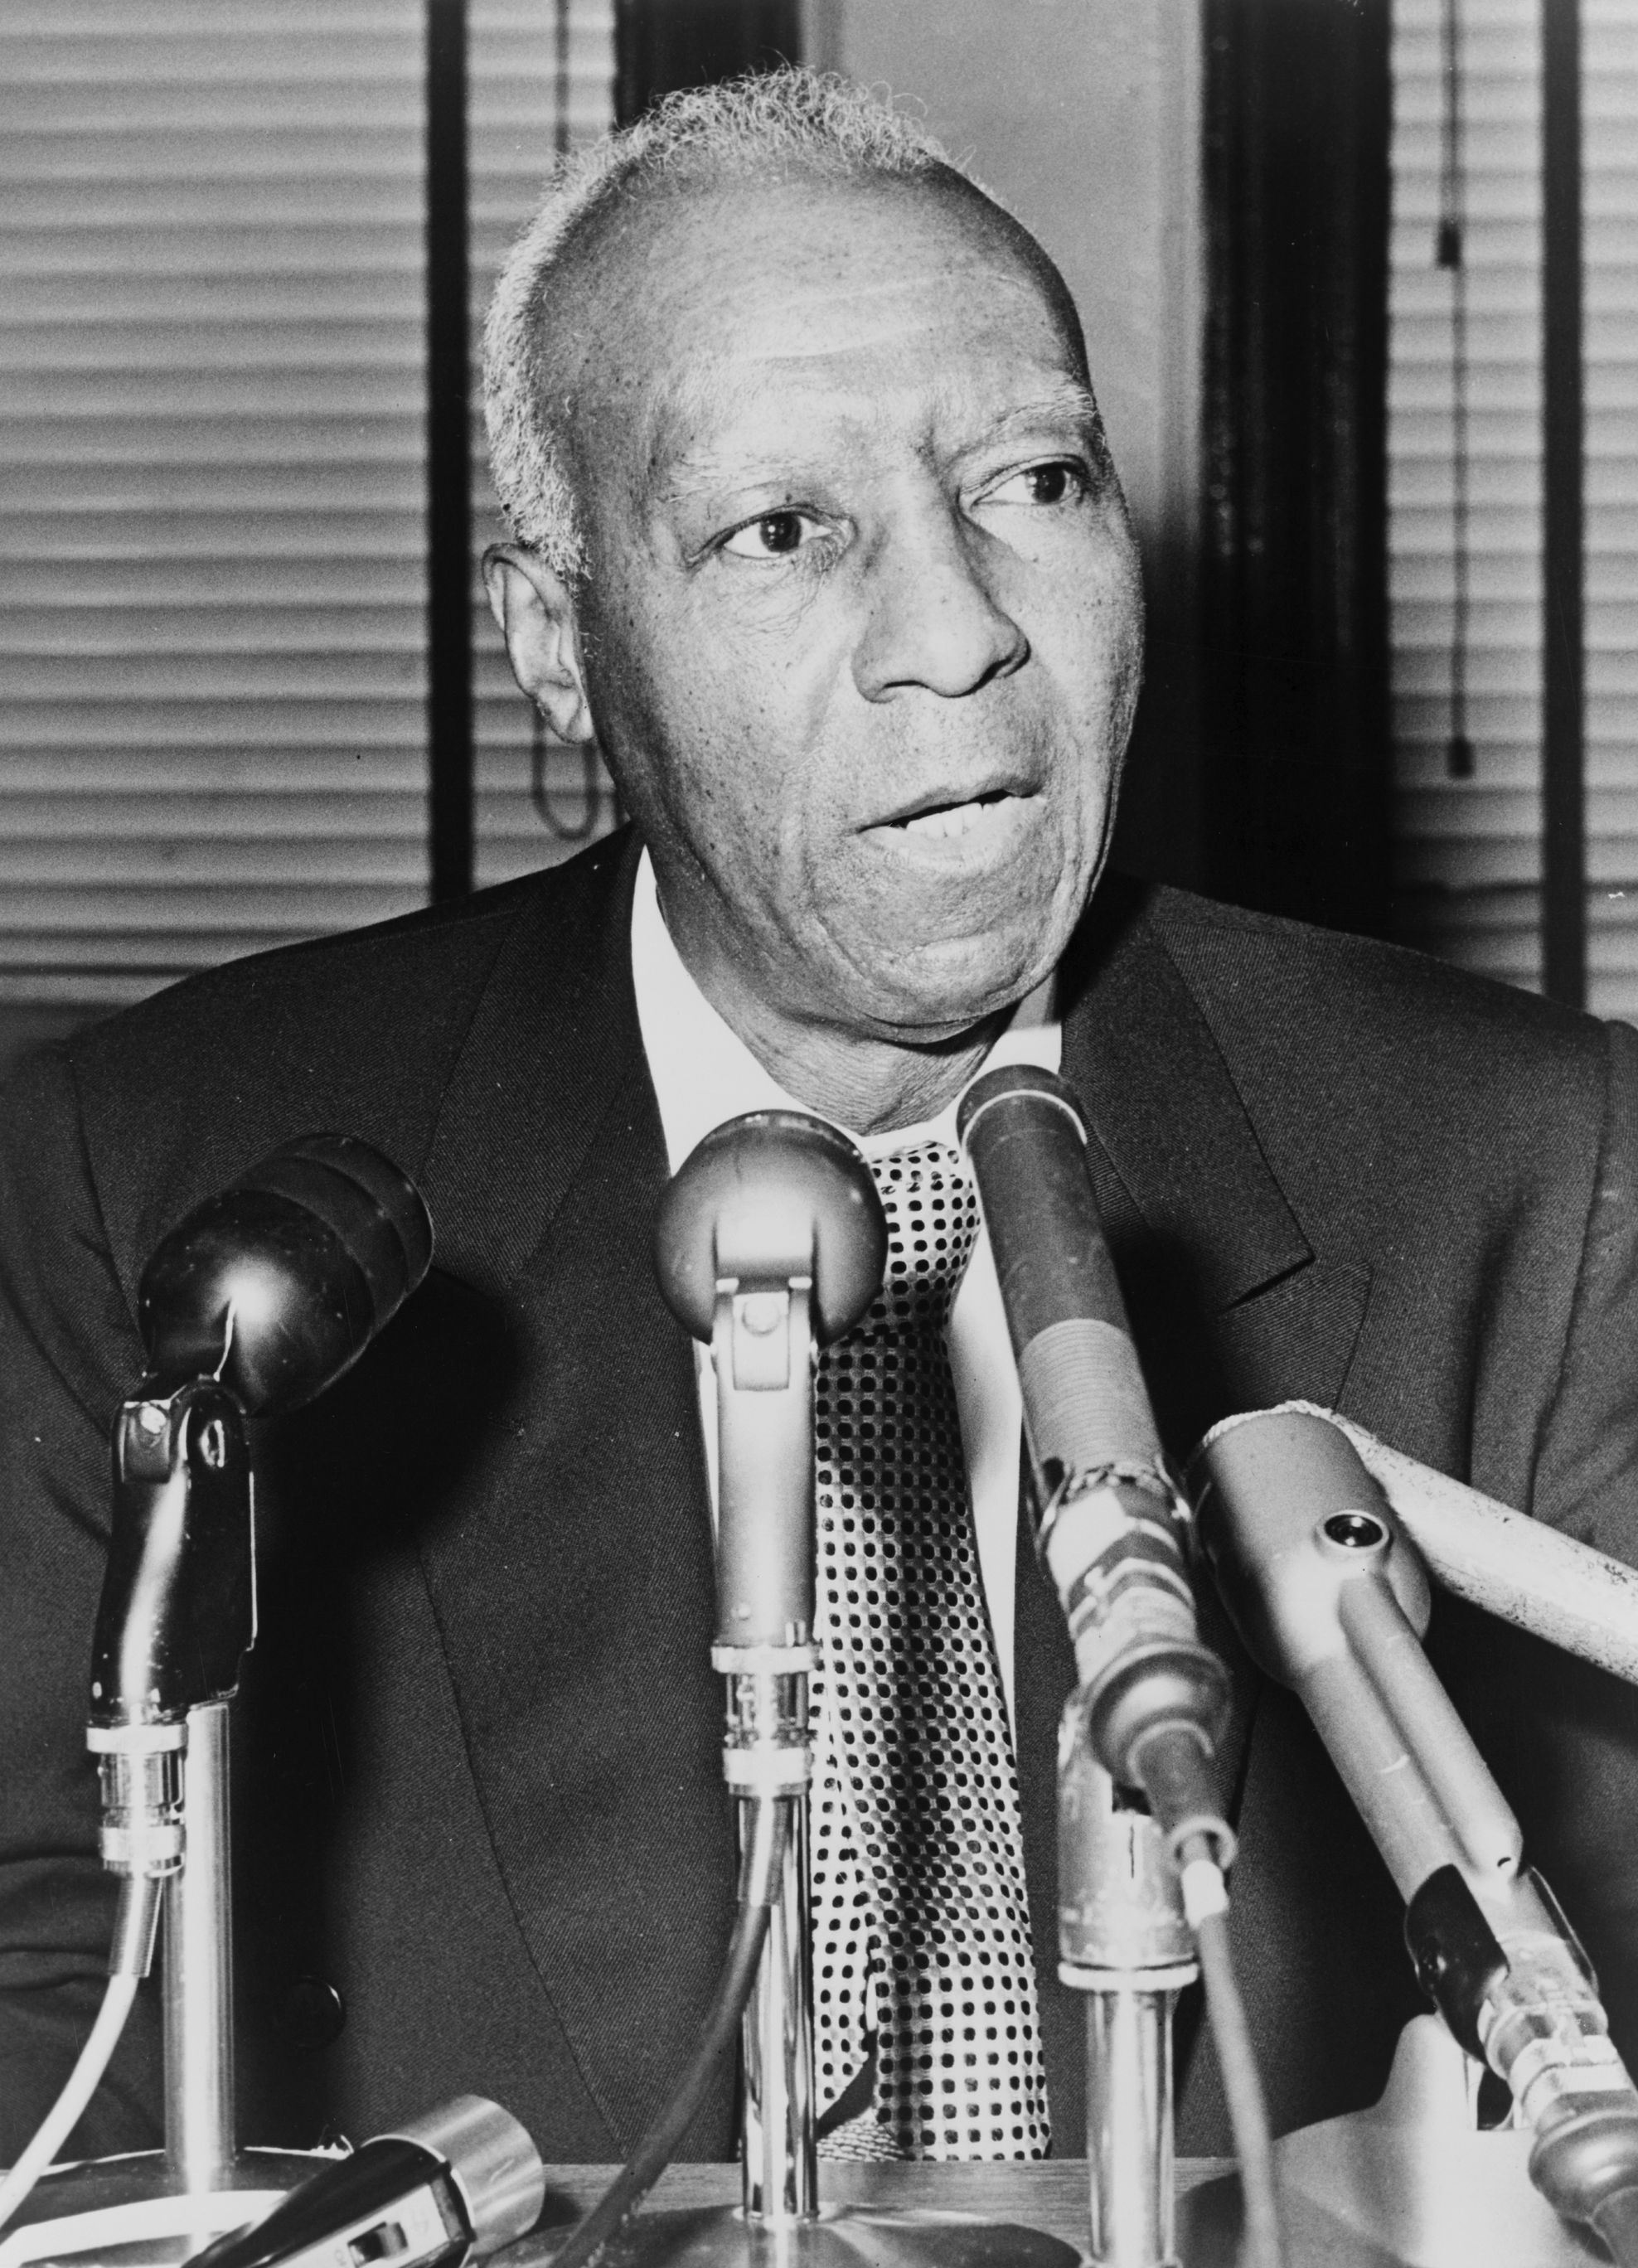 asa philip randolph Asa philip randolph (april 15, 1889 - may 16, 1979) was a leader in the civil rights movement , the american labor movement , and socialist political parties he organized and led the brotherhood of sleeping car porters , the first predominantly african-american labor union in the early civil rights movement and the labor movement , randolph.